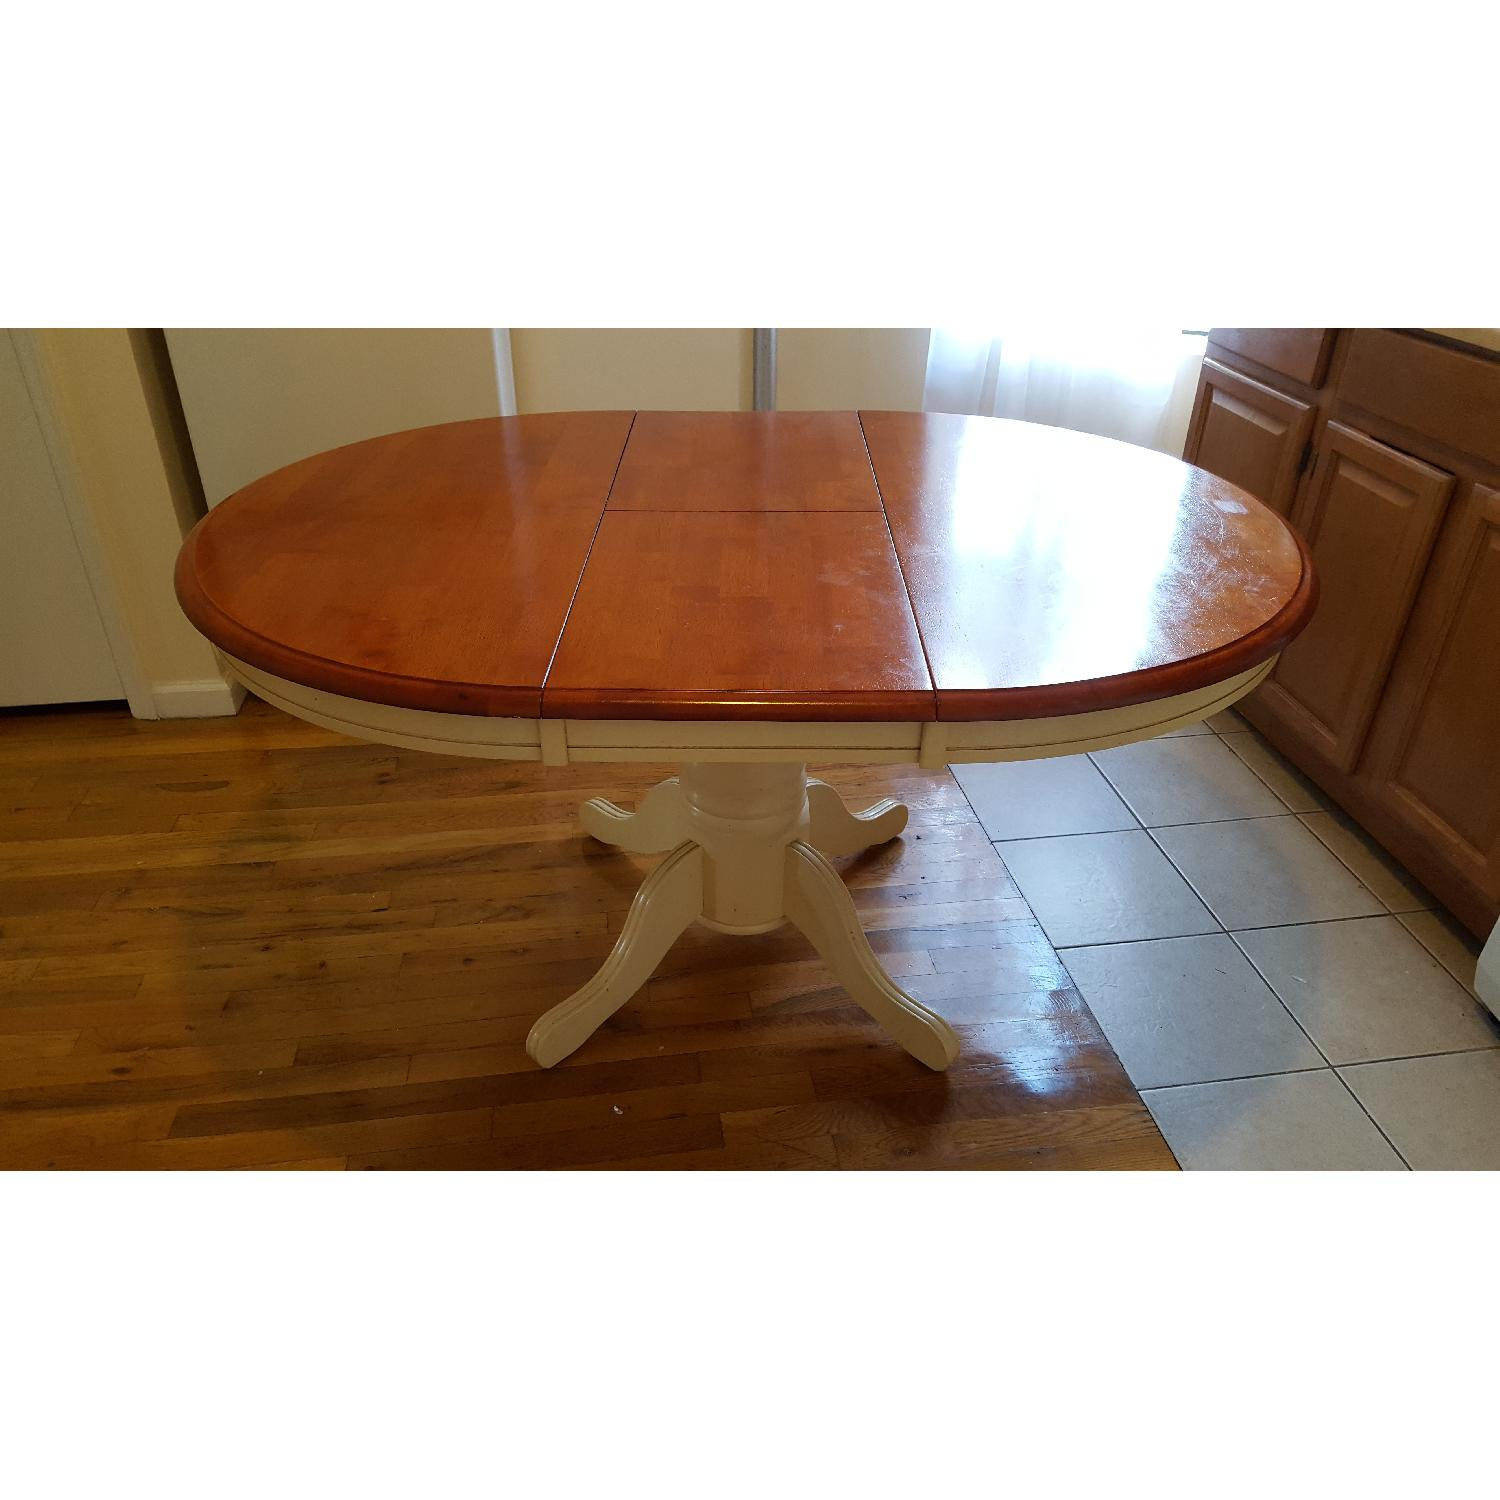 28 Expandable Kitchen Table Chintaly Imports  : 1500 1500 frame 0 from 45.63.4.129 size 1500 x 1500 jpeg 139kB